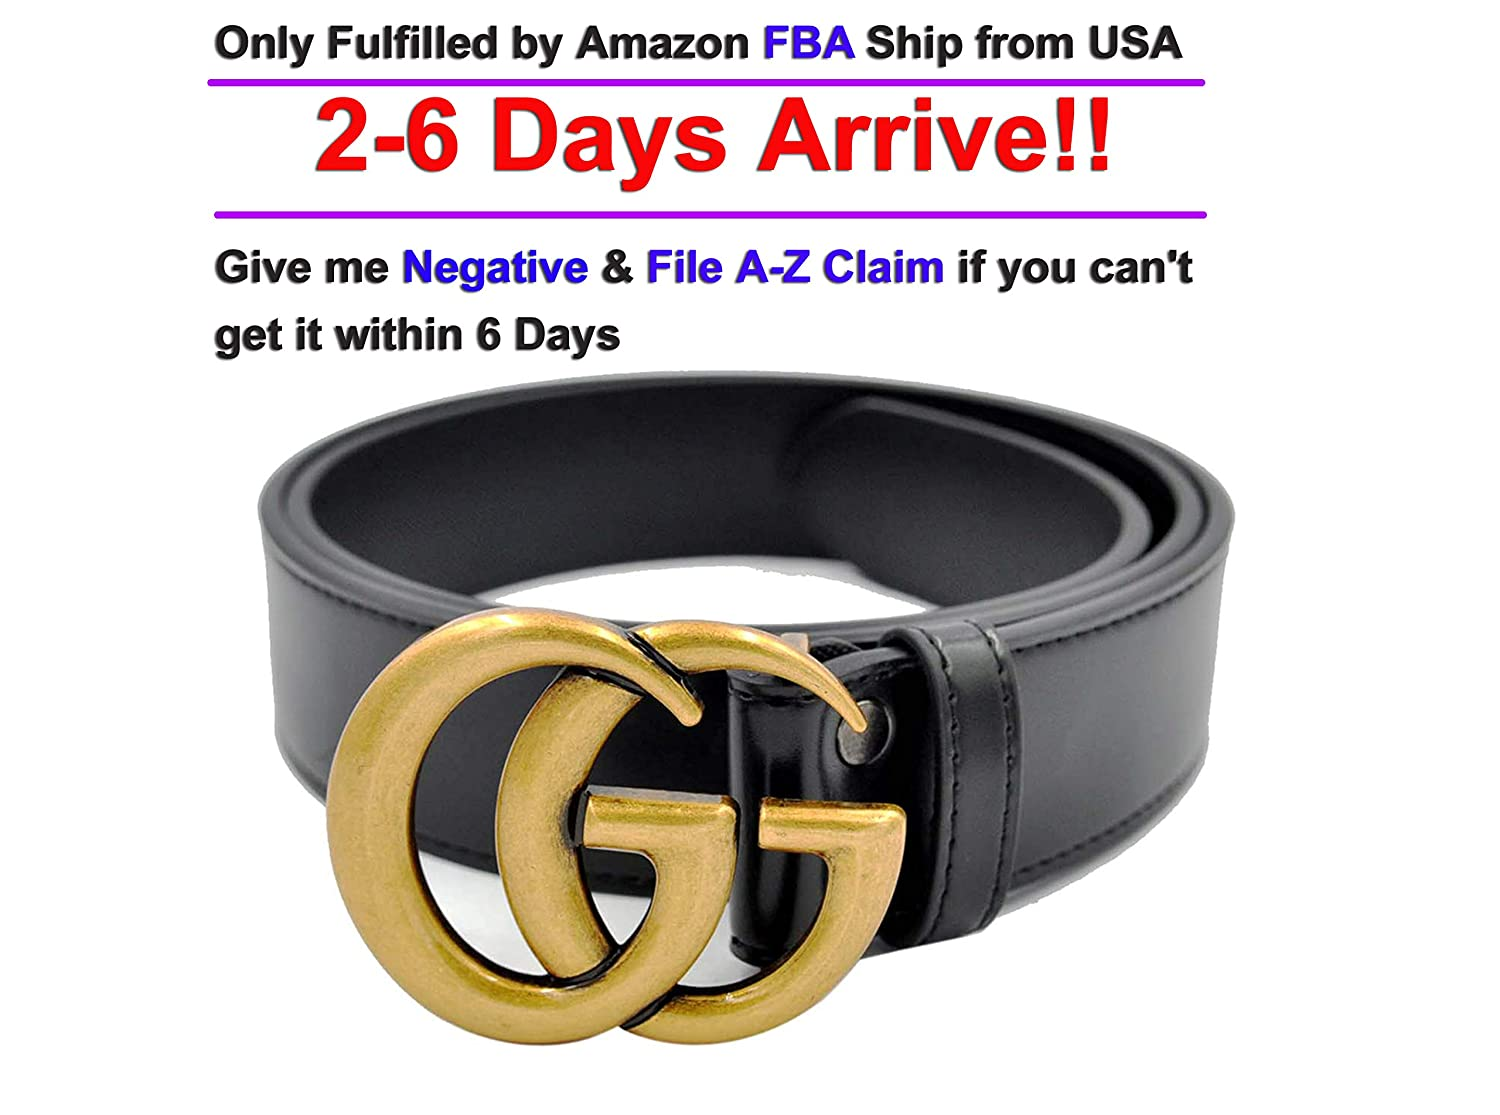 Luxury Designer GG Slim Belt for Women Or Men Unisex [3.8CM width]